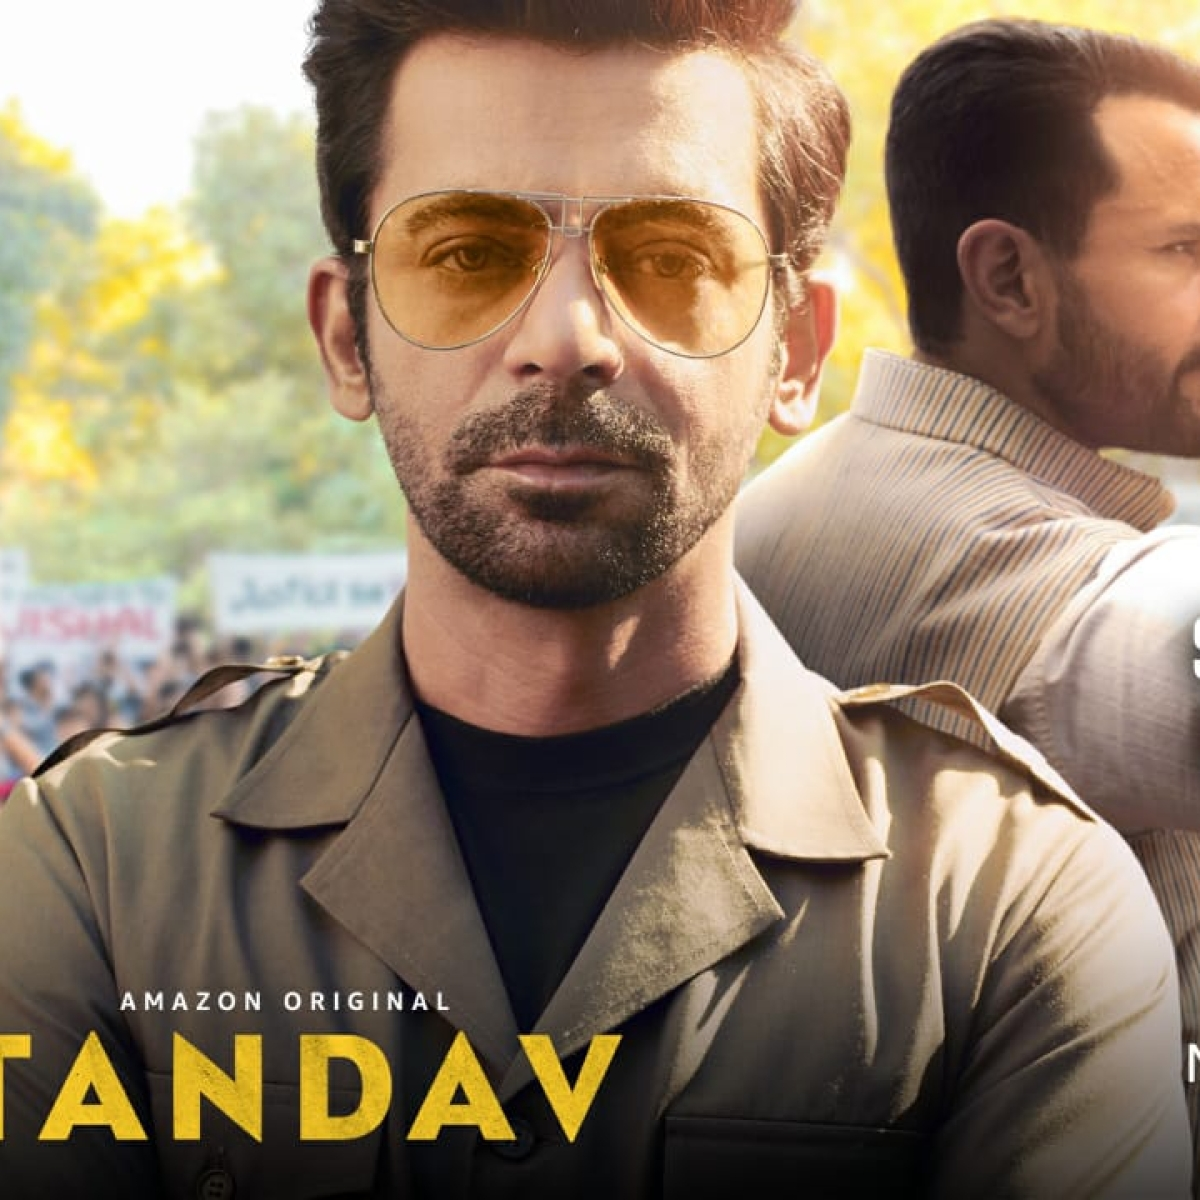 Amazon Prime unveils 'Tandav' character posters featuring Saif, Sunil, Dimple, and others